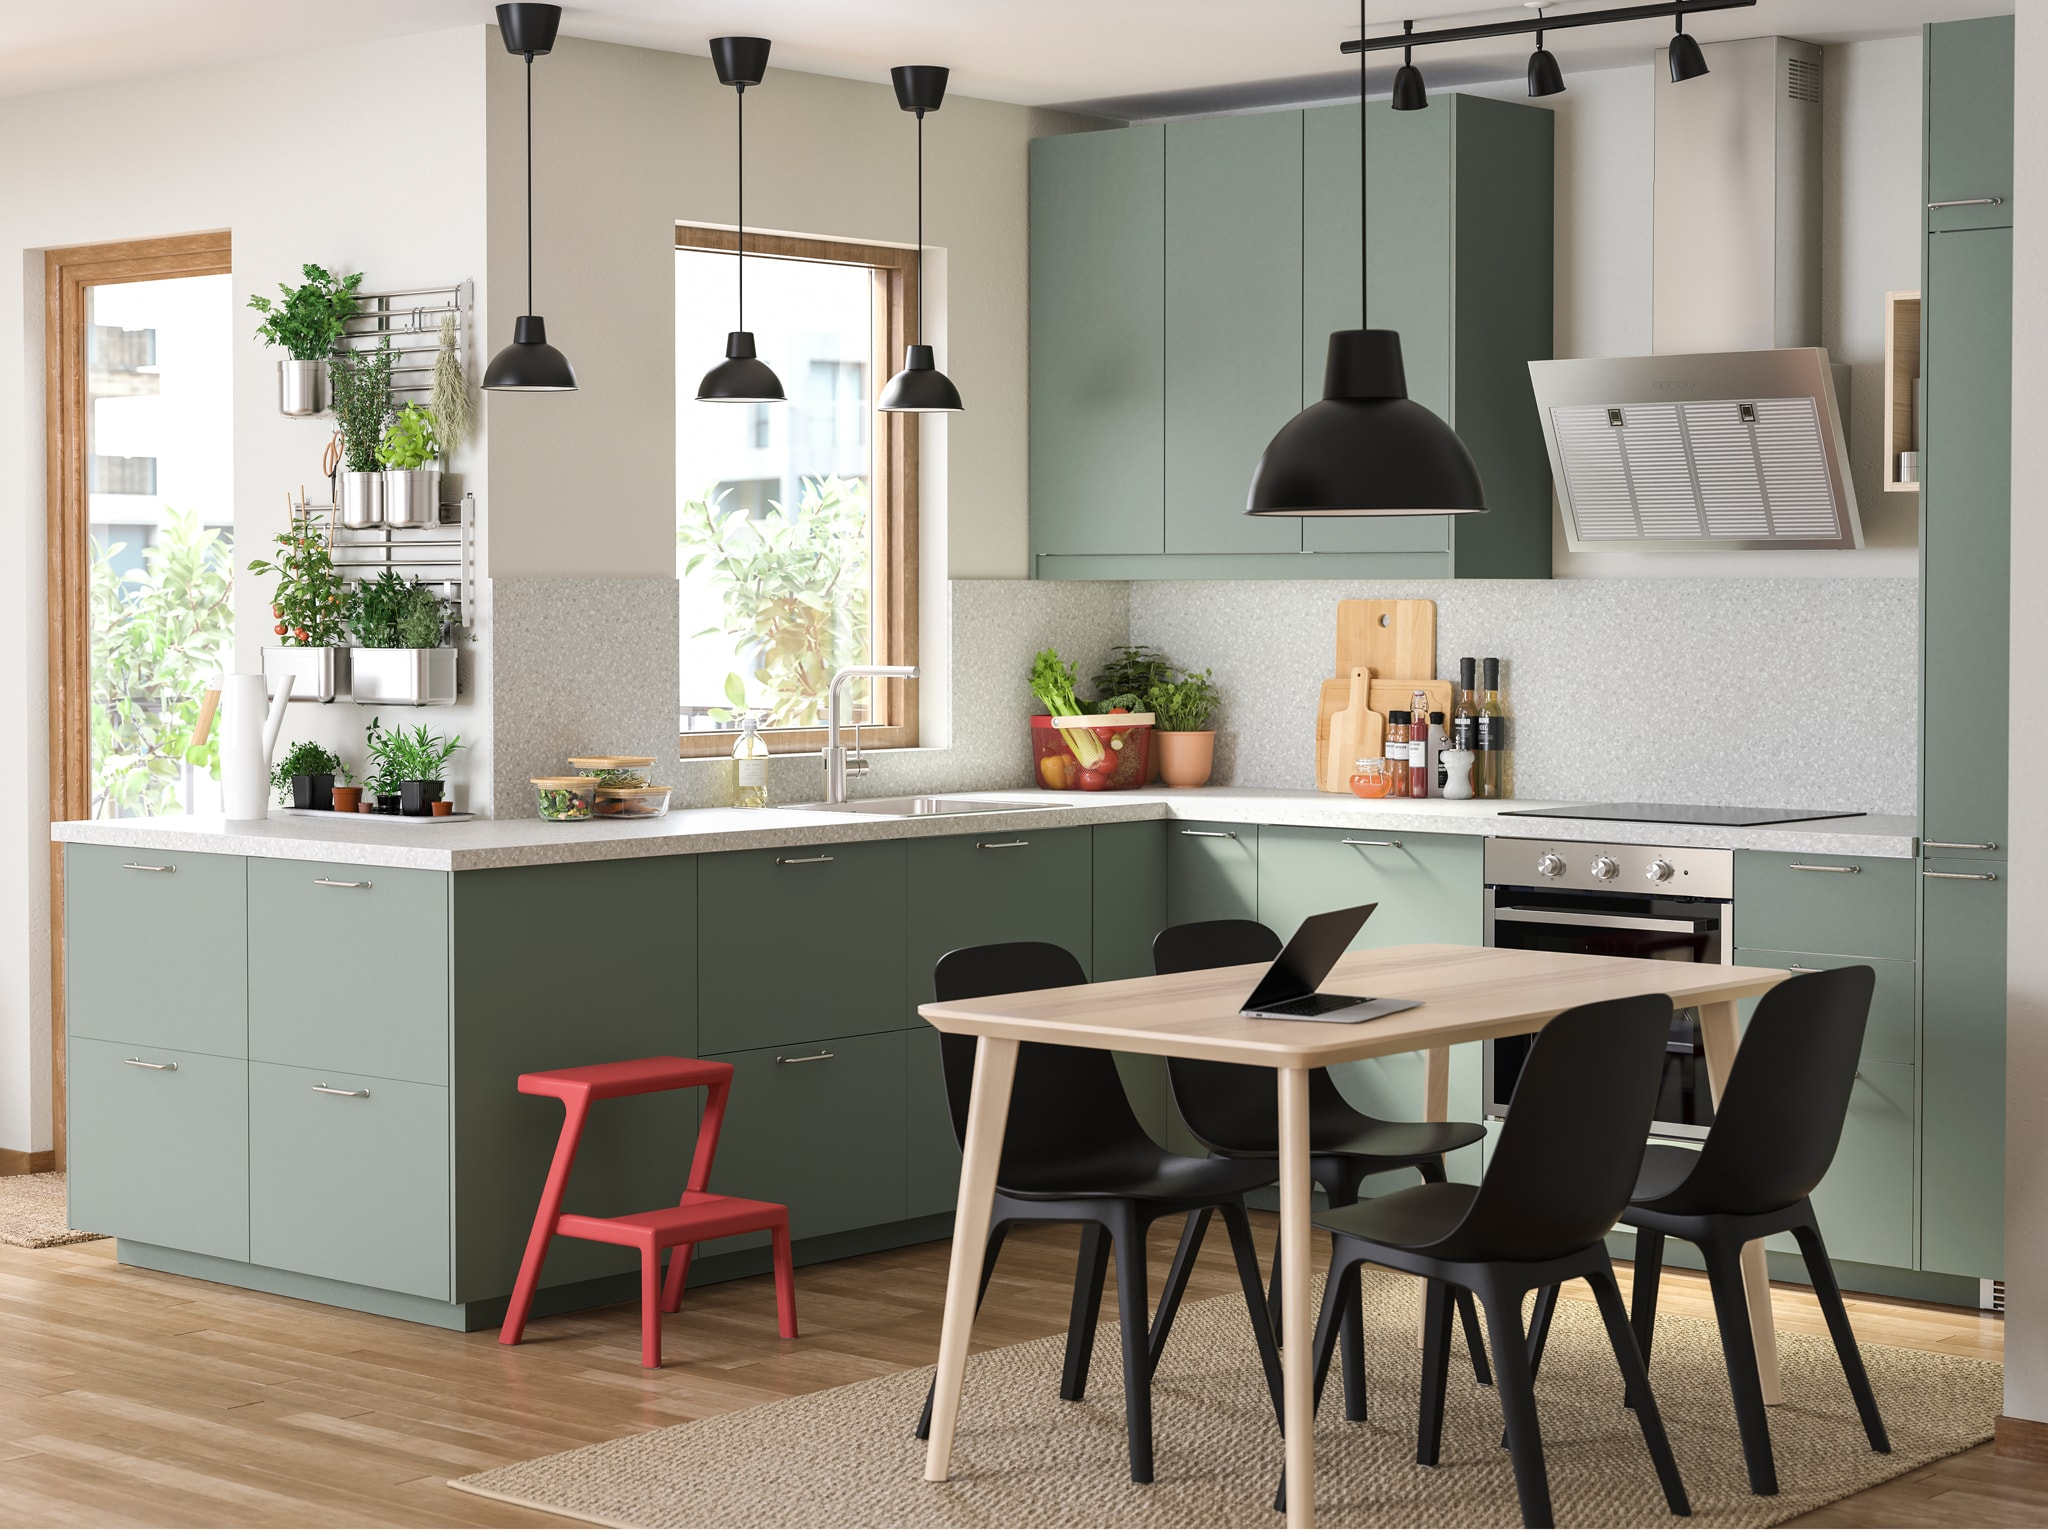 A lovely green and environmentally conscious kitchen